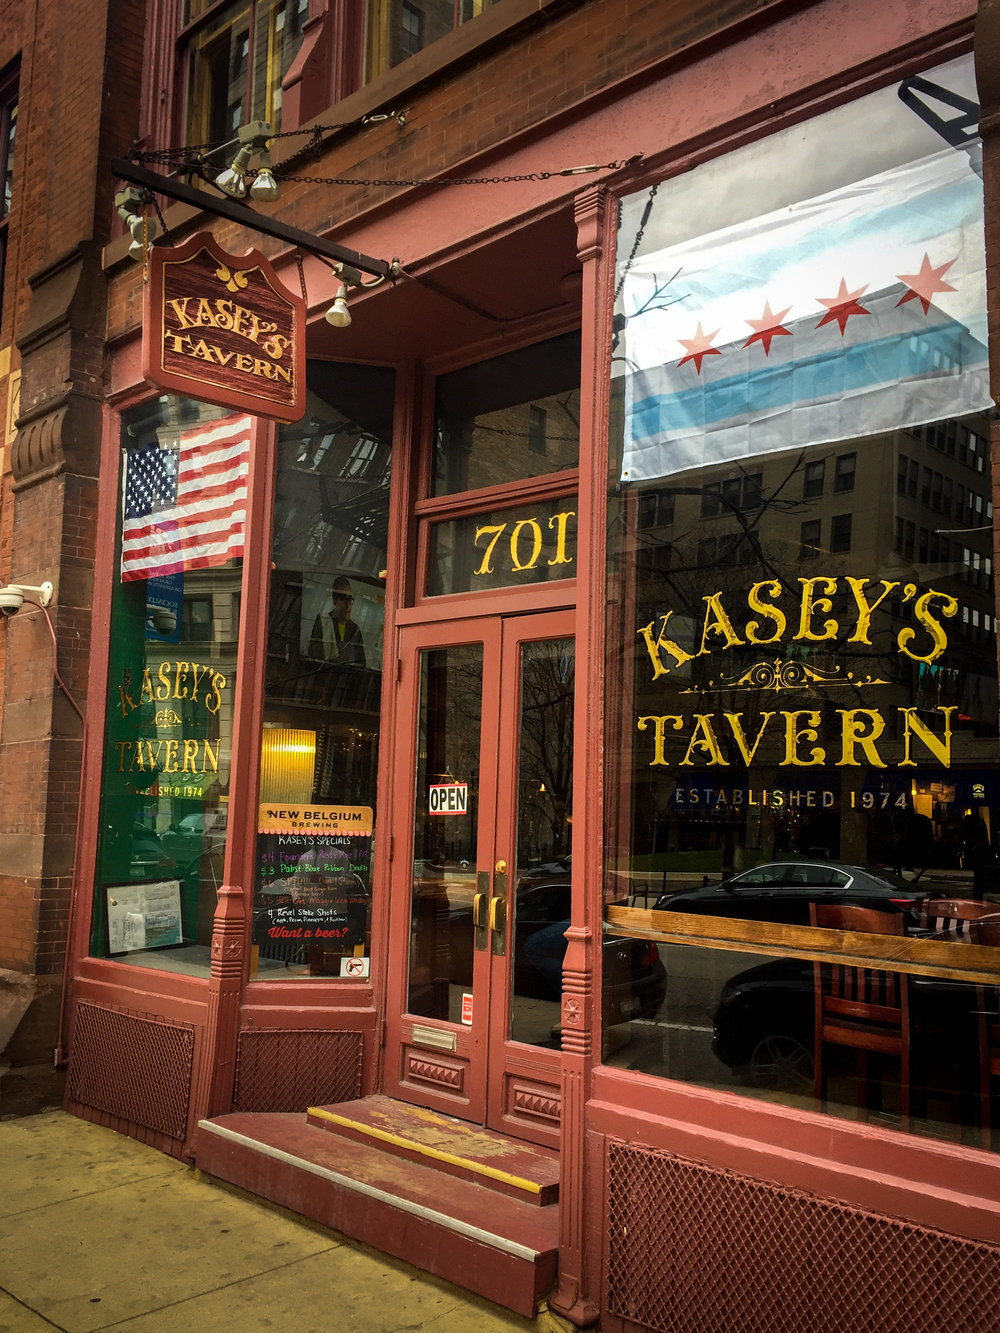 Kasey's Tavern - The Second Oldest Tavern in Chicago